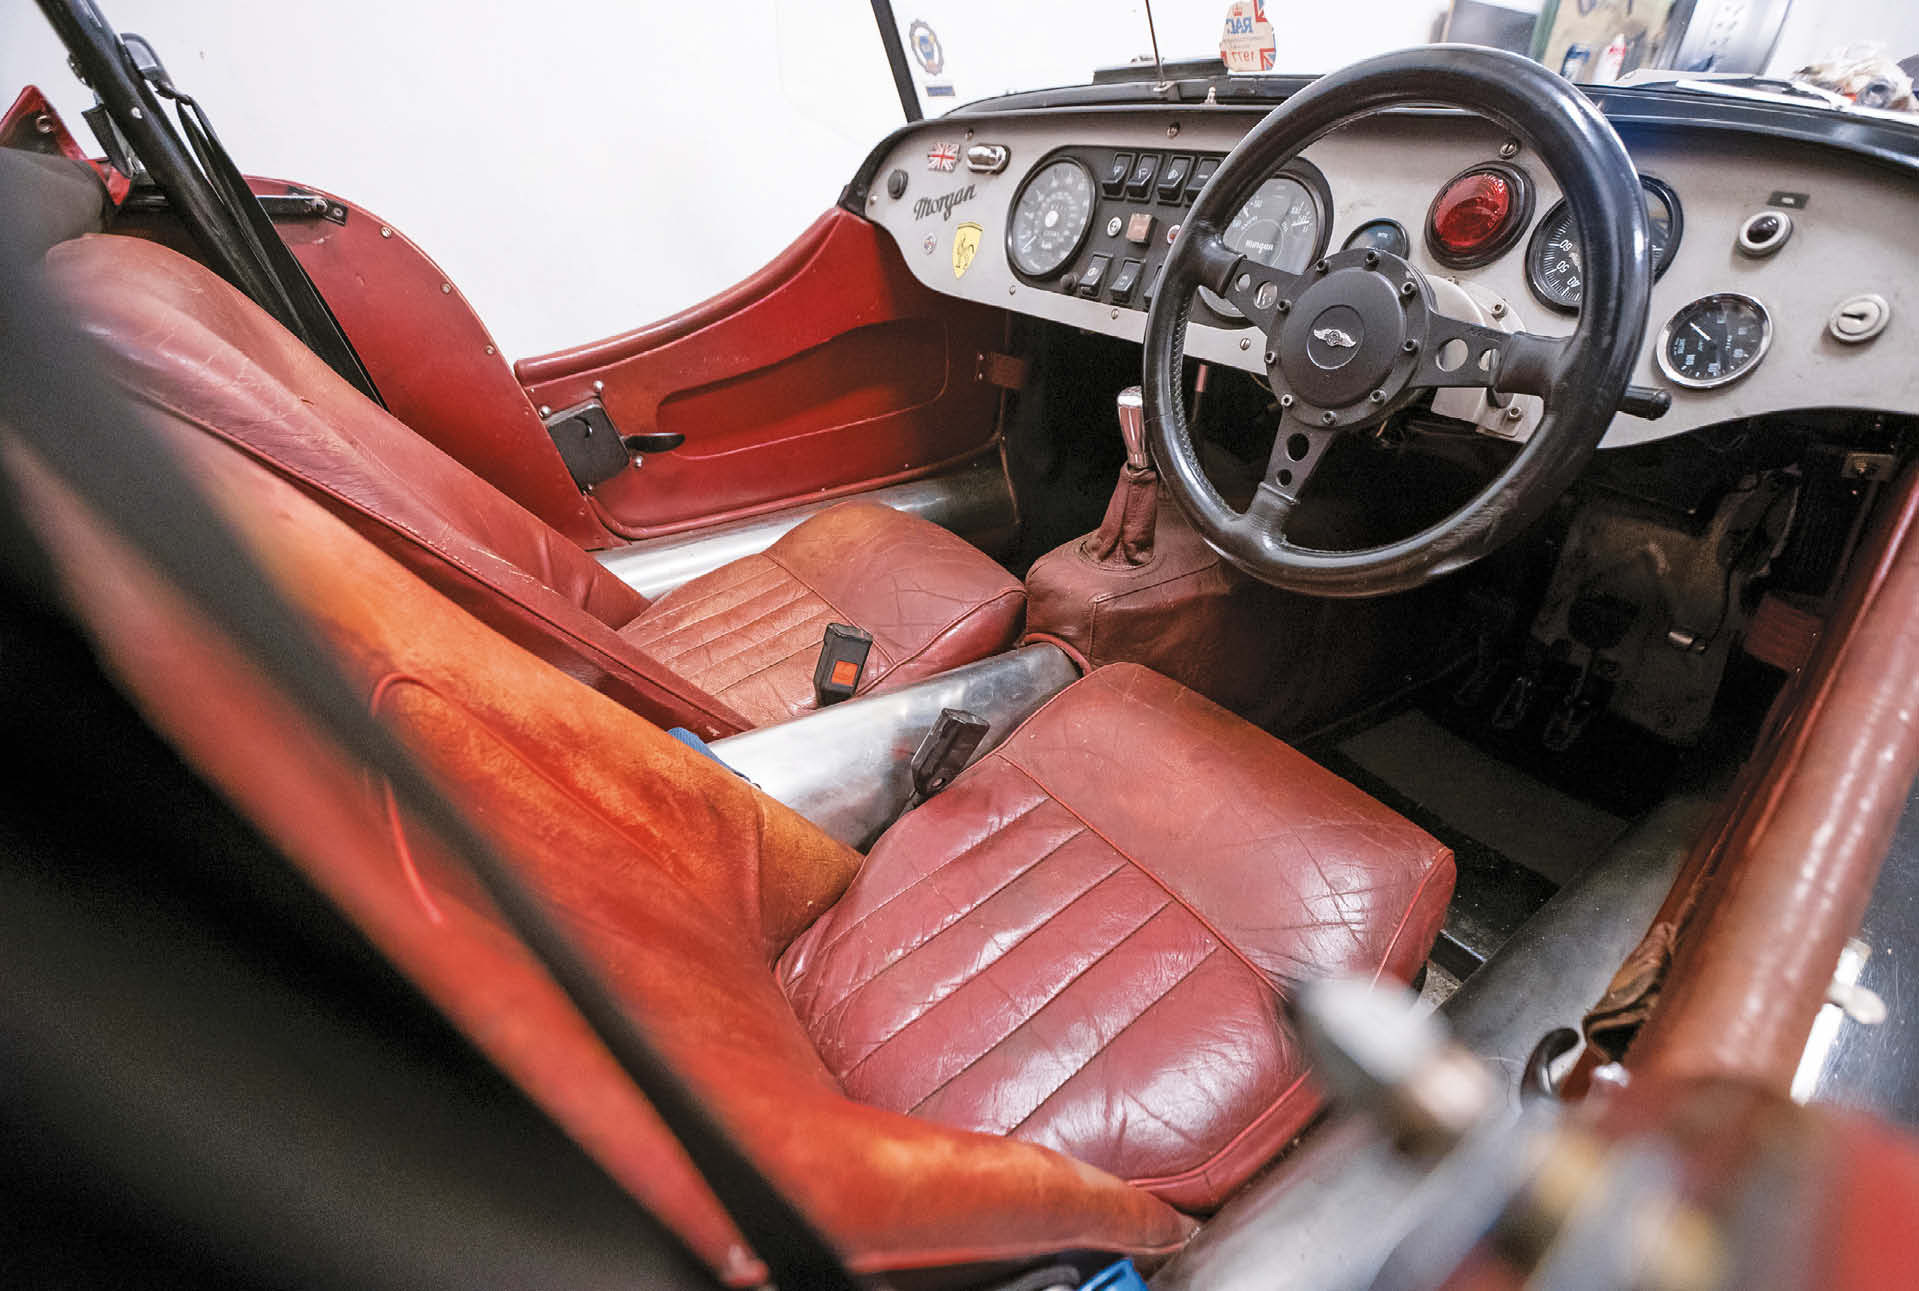 """The interior is best described as """"exquisitely vintage"""". But is prime for restoration"""